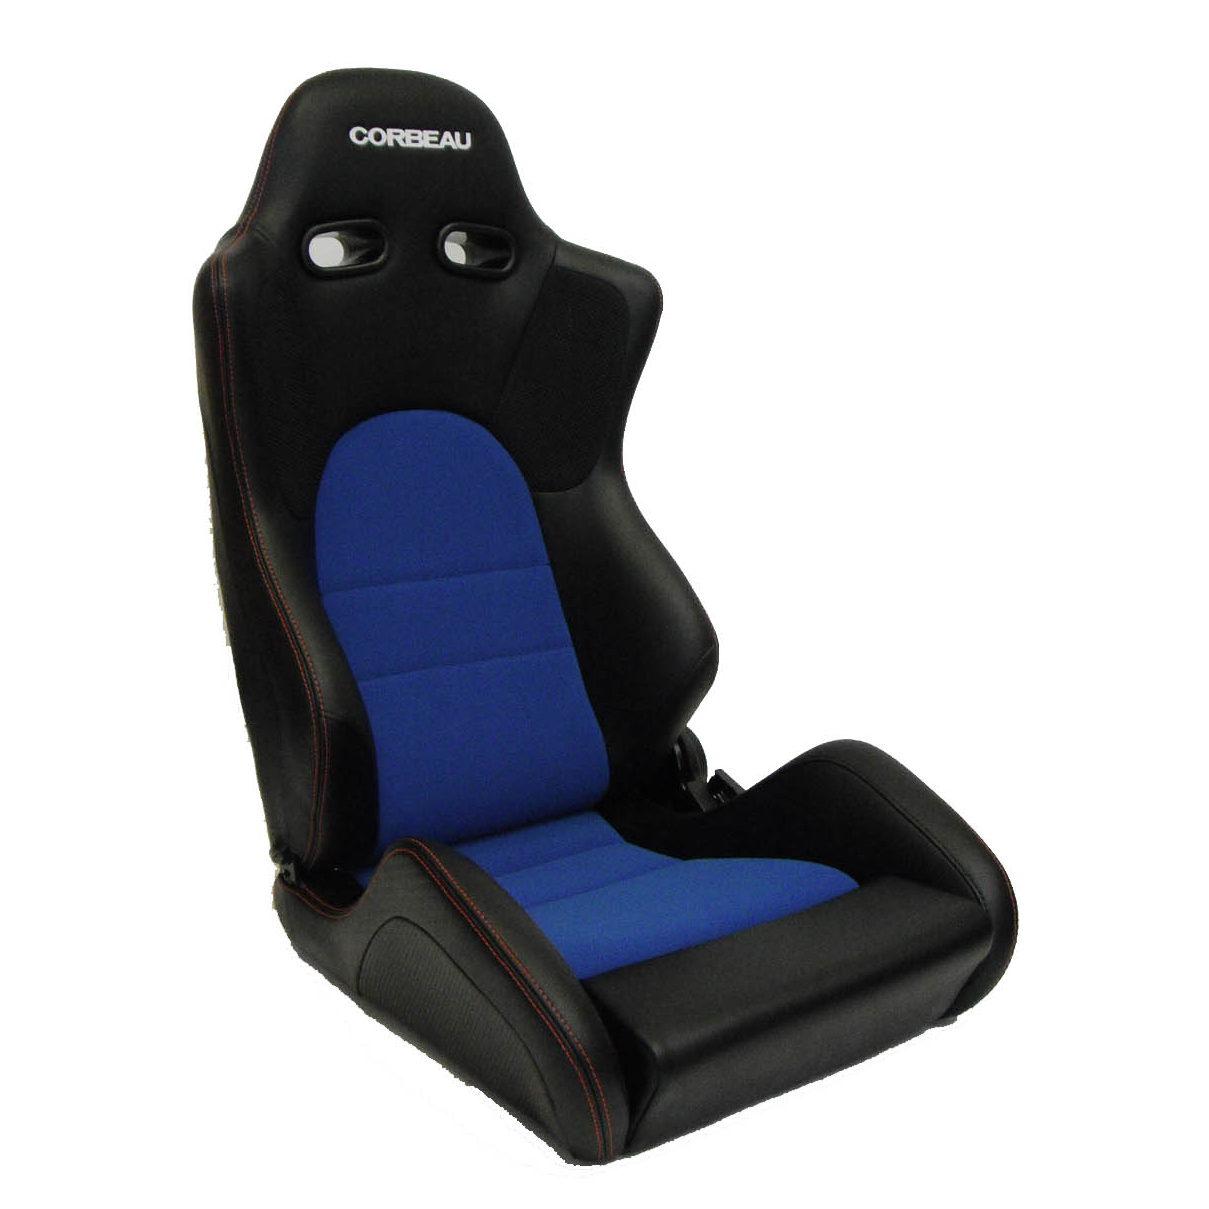 seats Nrg type-r racing seats you will be constantly sliding on your factory seats at the corners, or leaning in the opposite direction of the way you're turning.